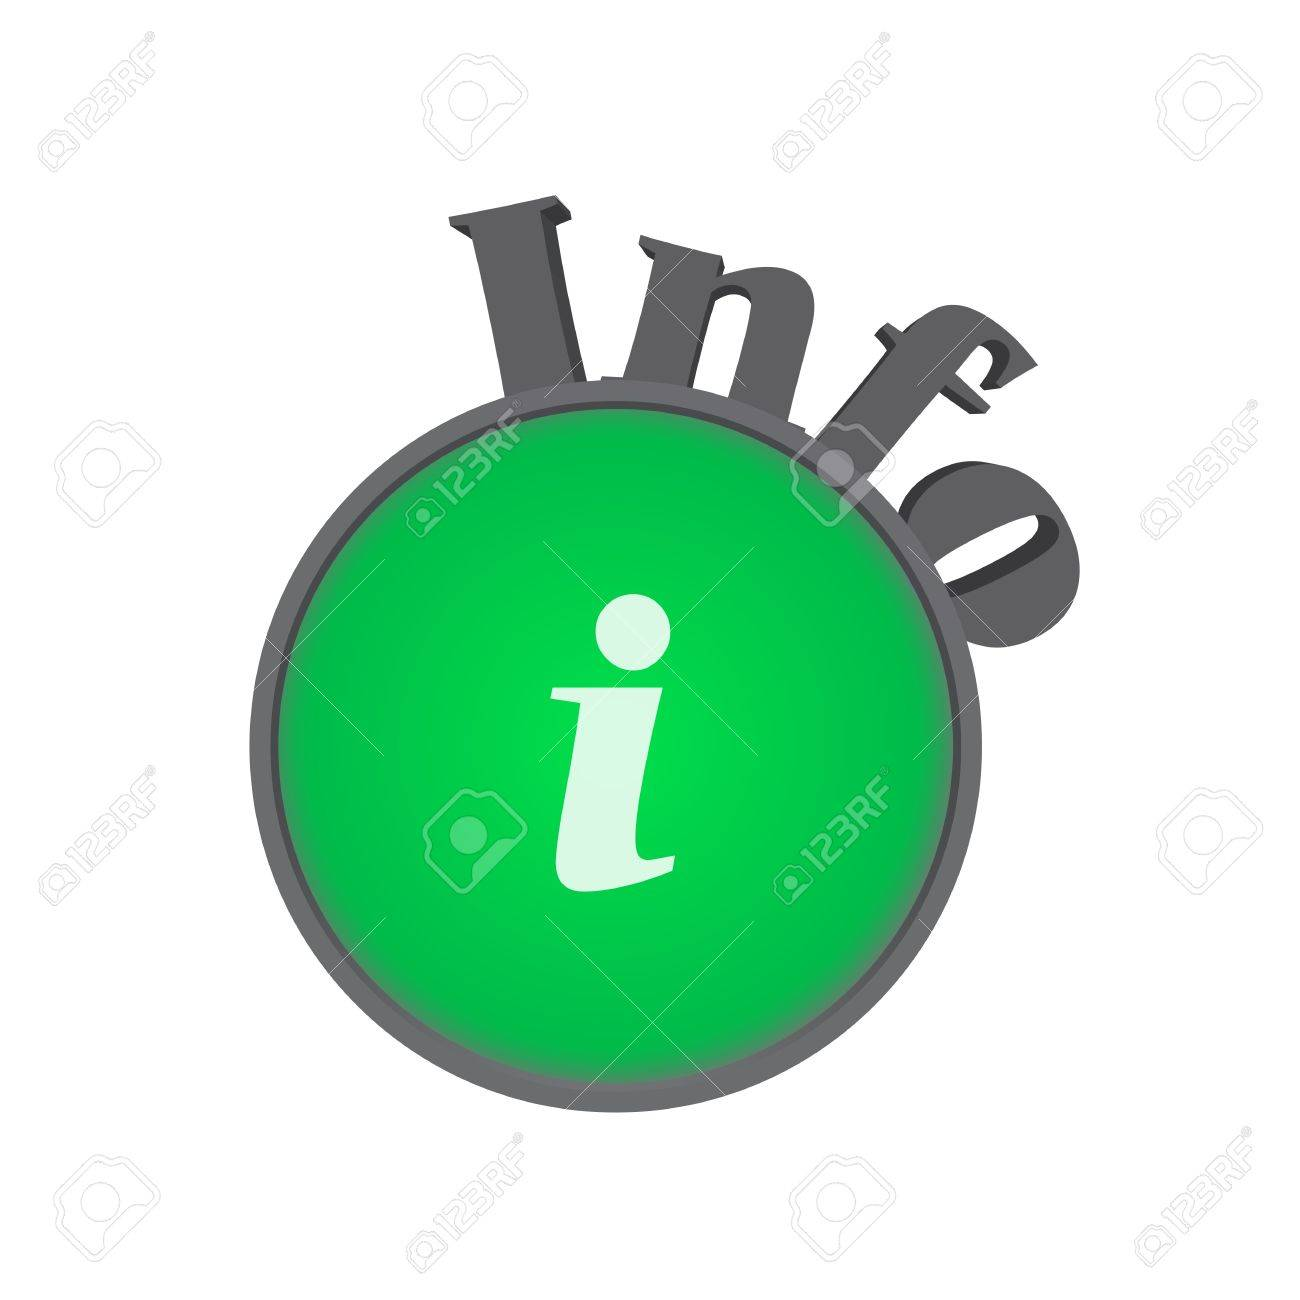 Info symbol in green on white background Stock Vector - 18294025